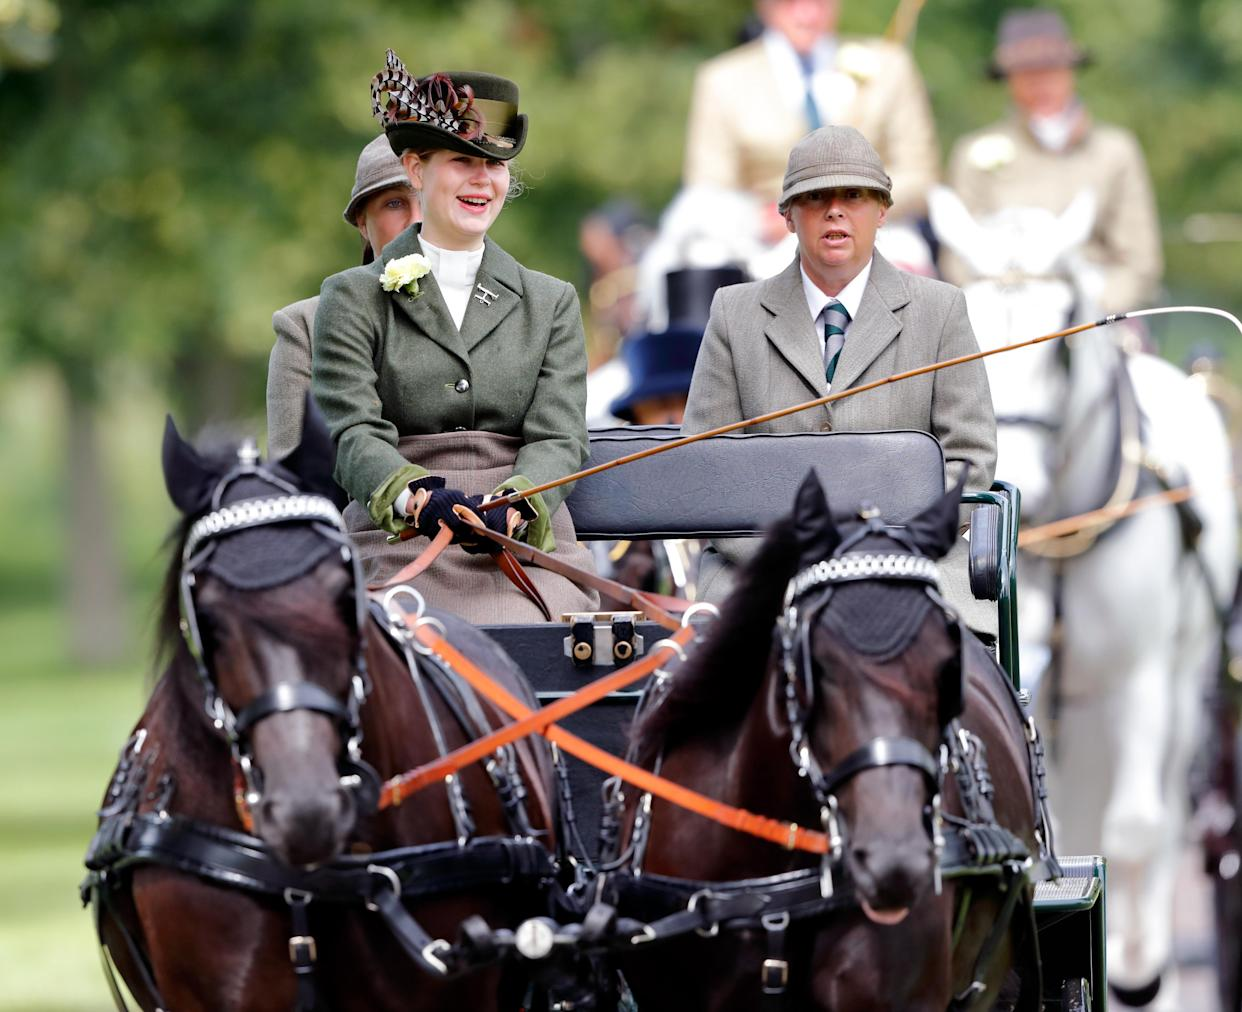 WINDSOR, UNITED KINGDOM - JULY 04: (EMBARGOED FOR PUBLICATION IN UK NEWSPAPERS UNTIL 24 HOURS AFTER CREATE DATE AND TIME) Lady Louise Windsor takes part in 'The Champagne Laurent-Perrier Meet of The British Driving Society' on day 4 of the Royal Windsor Horse Show in Home Park, Windsor Castle on July 4, 2021 in Windsor, England. (Photo by Max Mumby/Indigo/Getty Images)